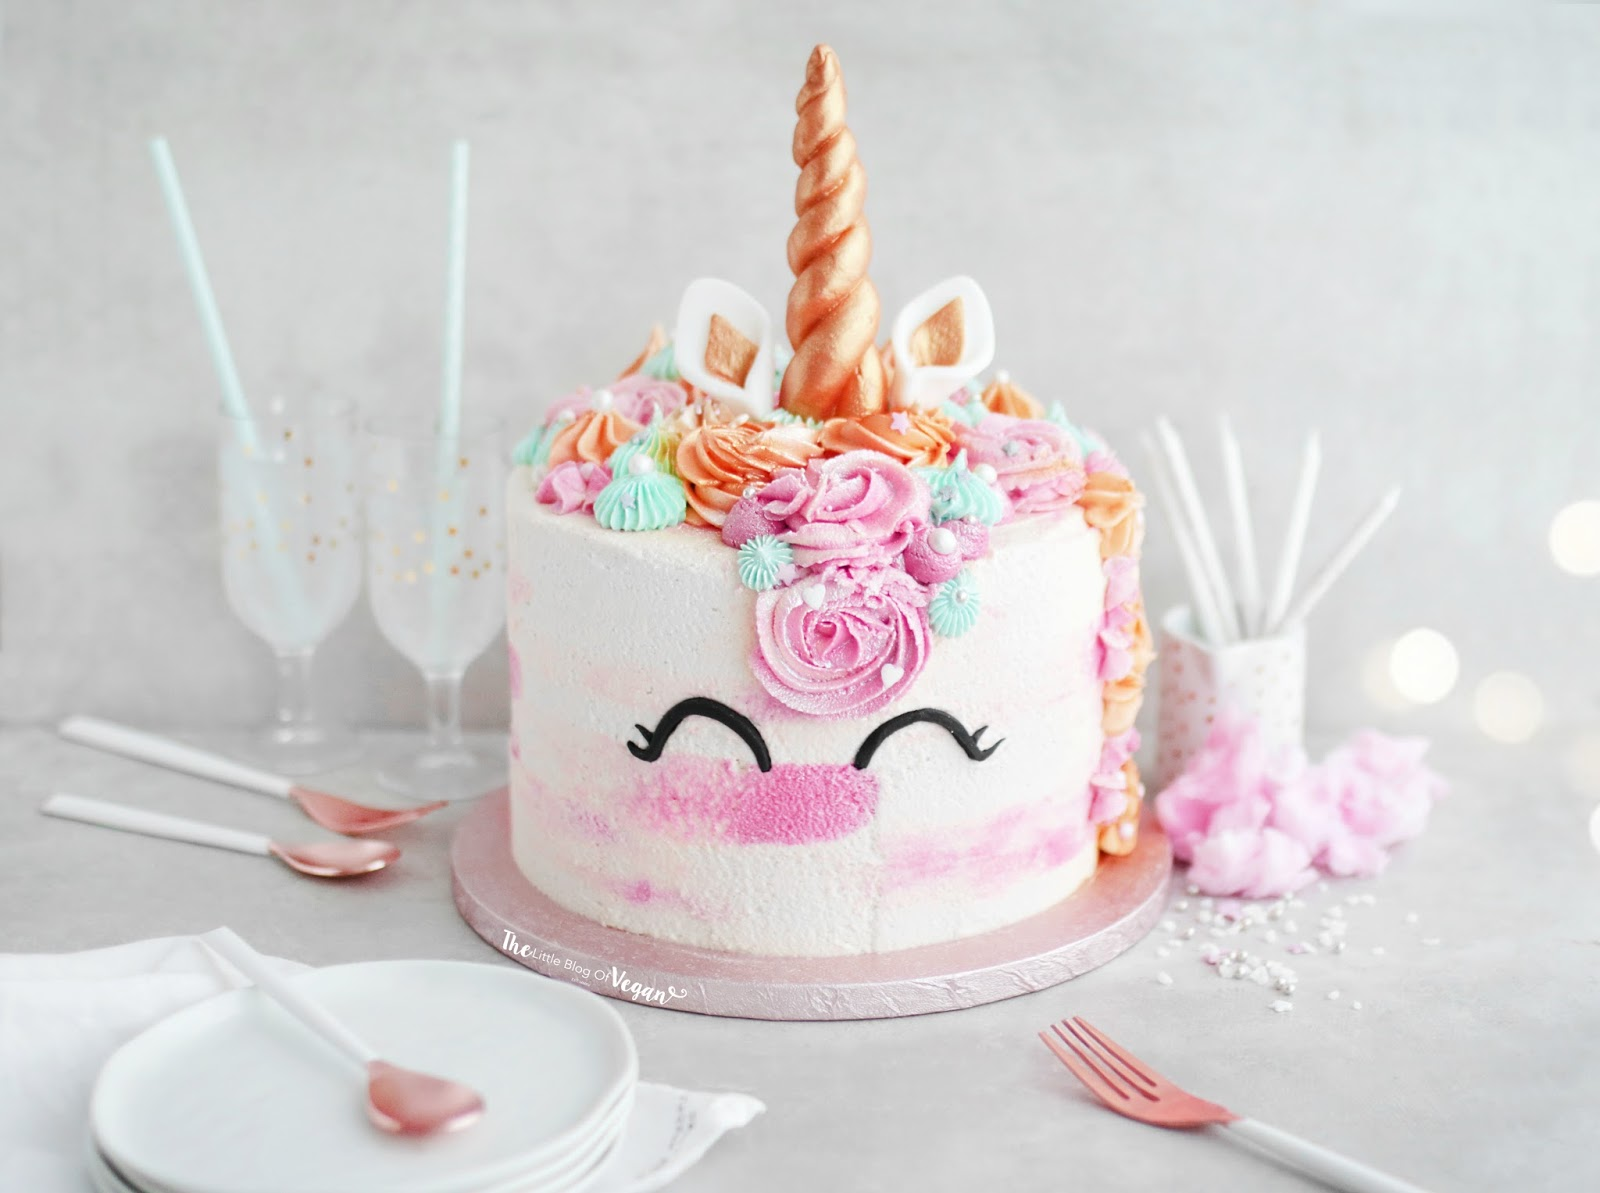 Vegan Unicorn Cake Recipe